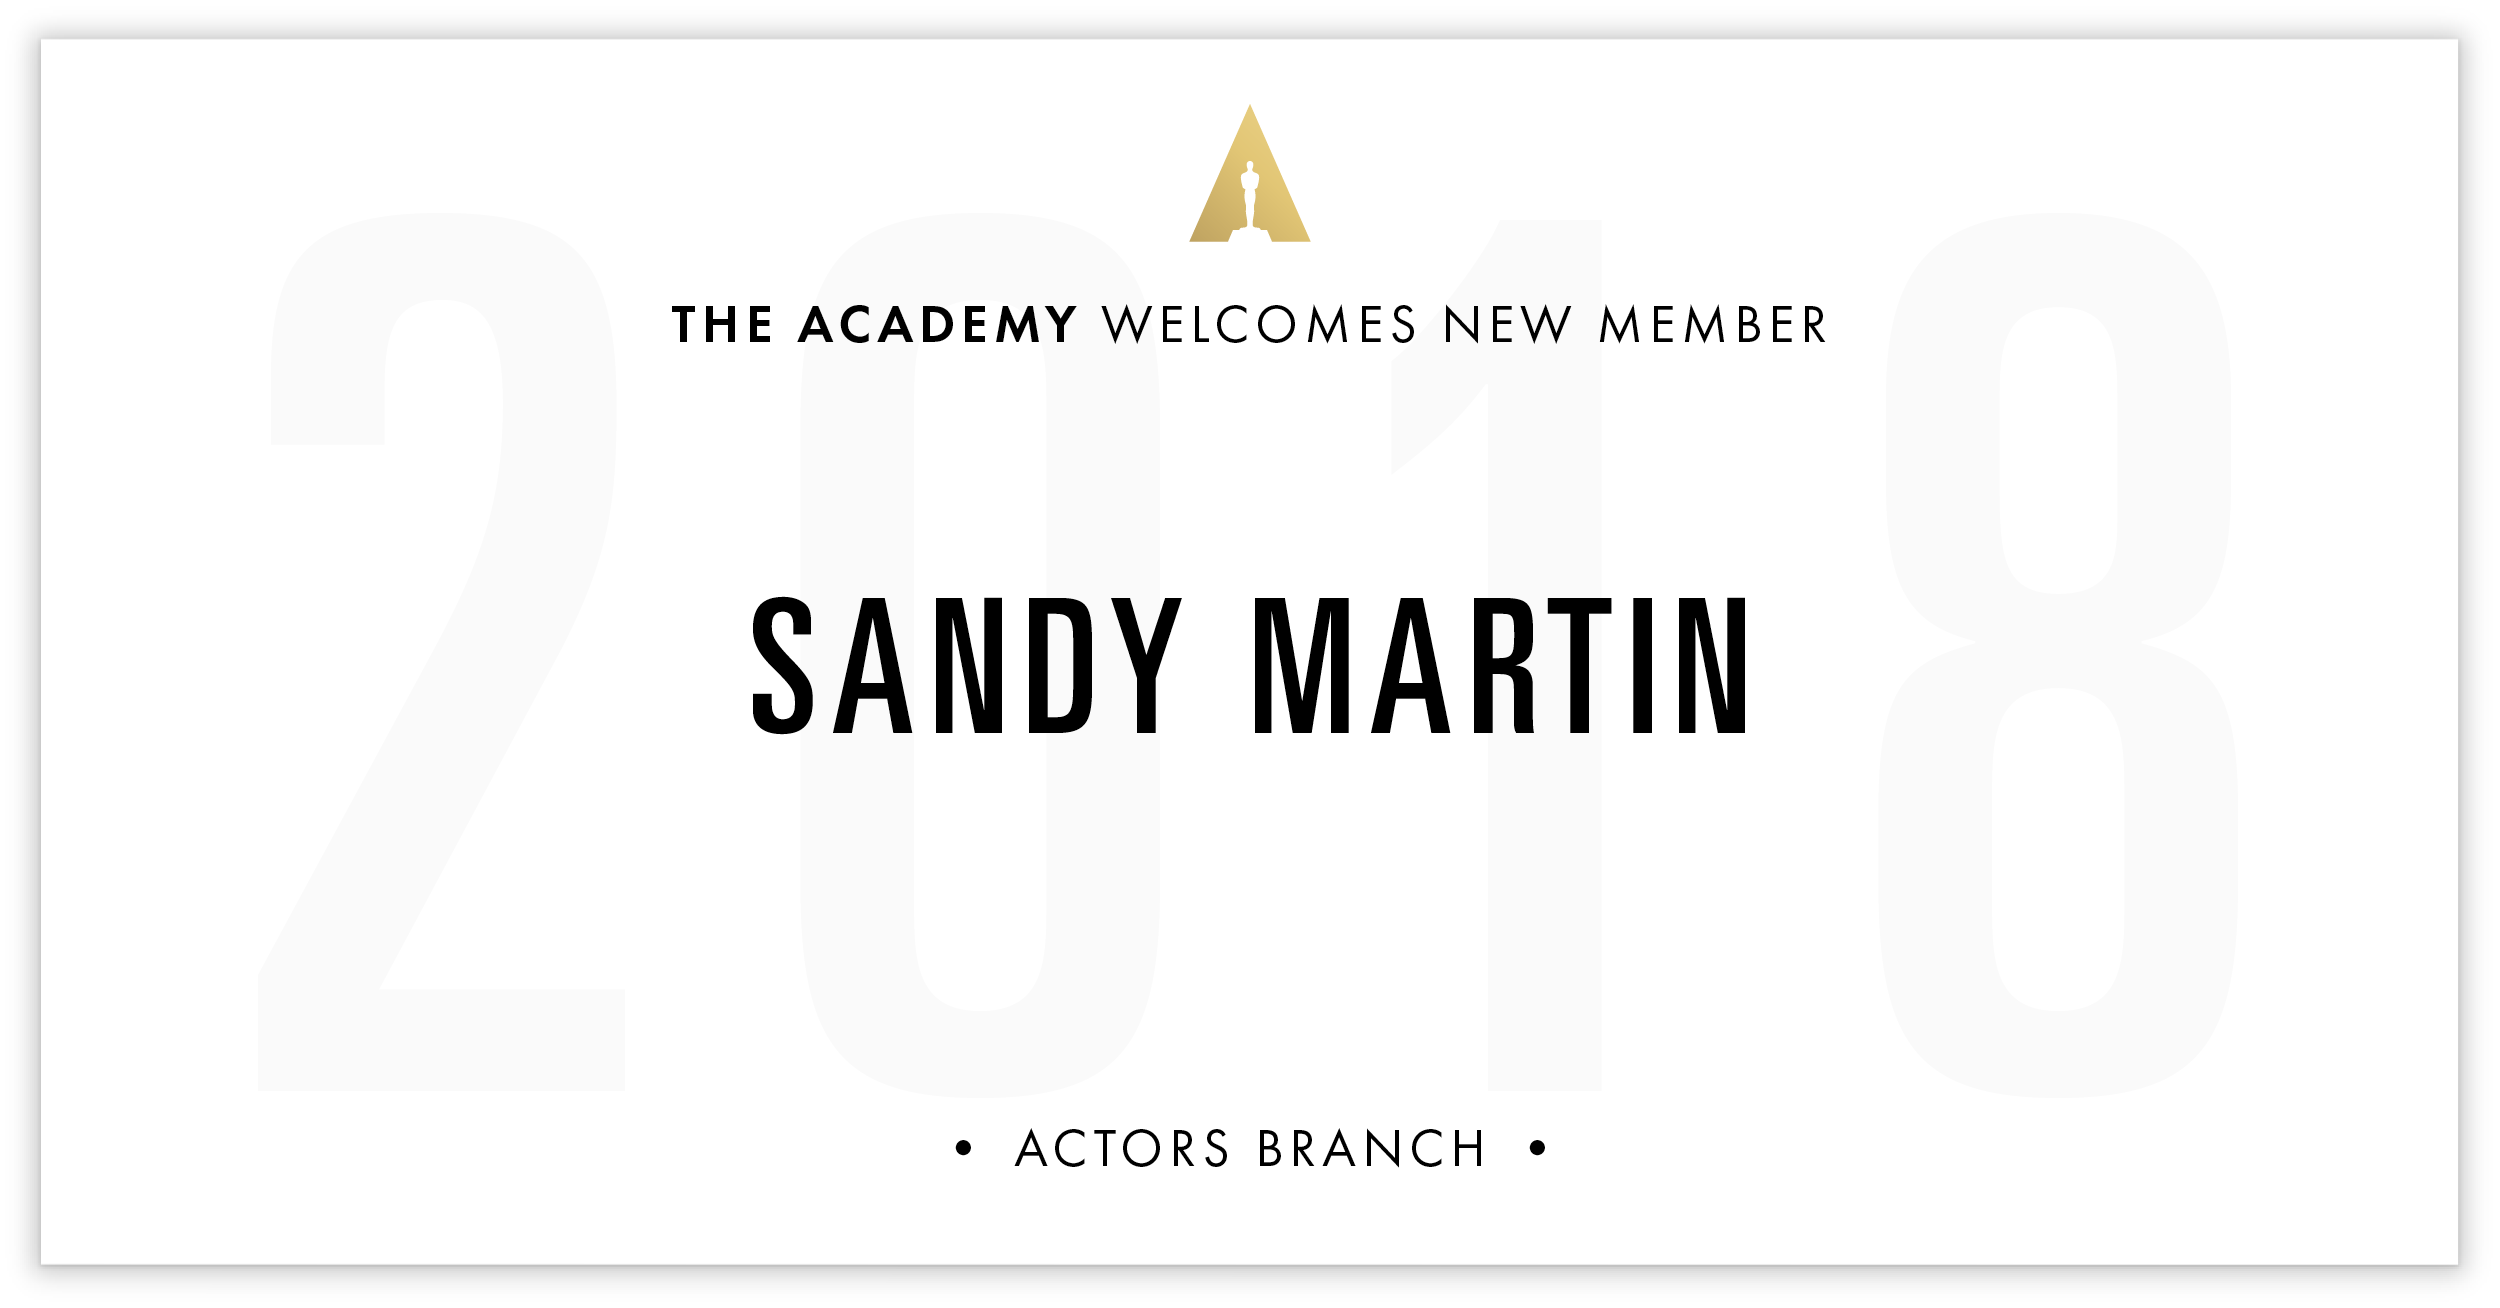 Sandy Martin is invited!